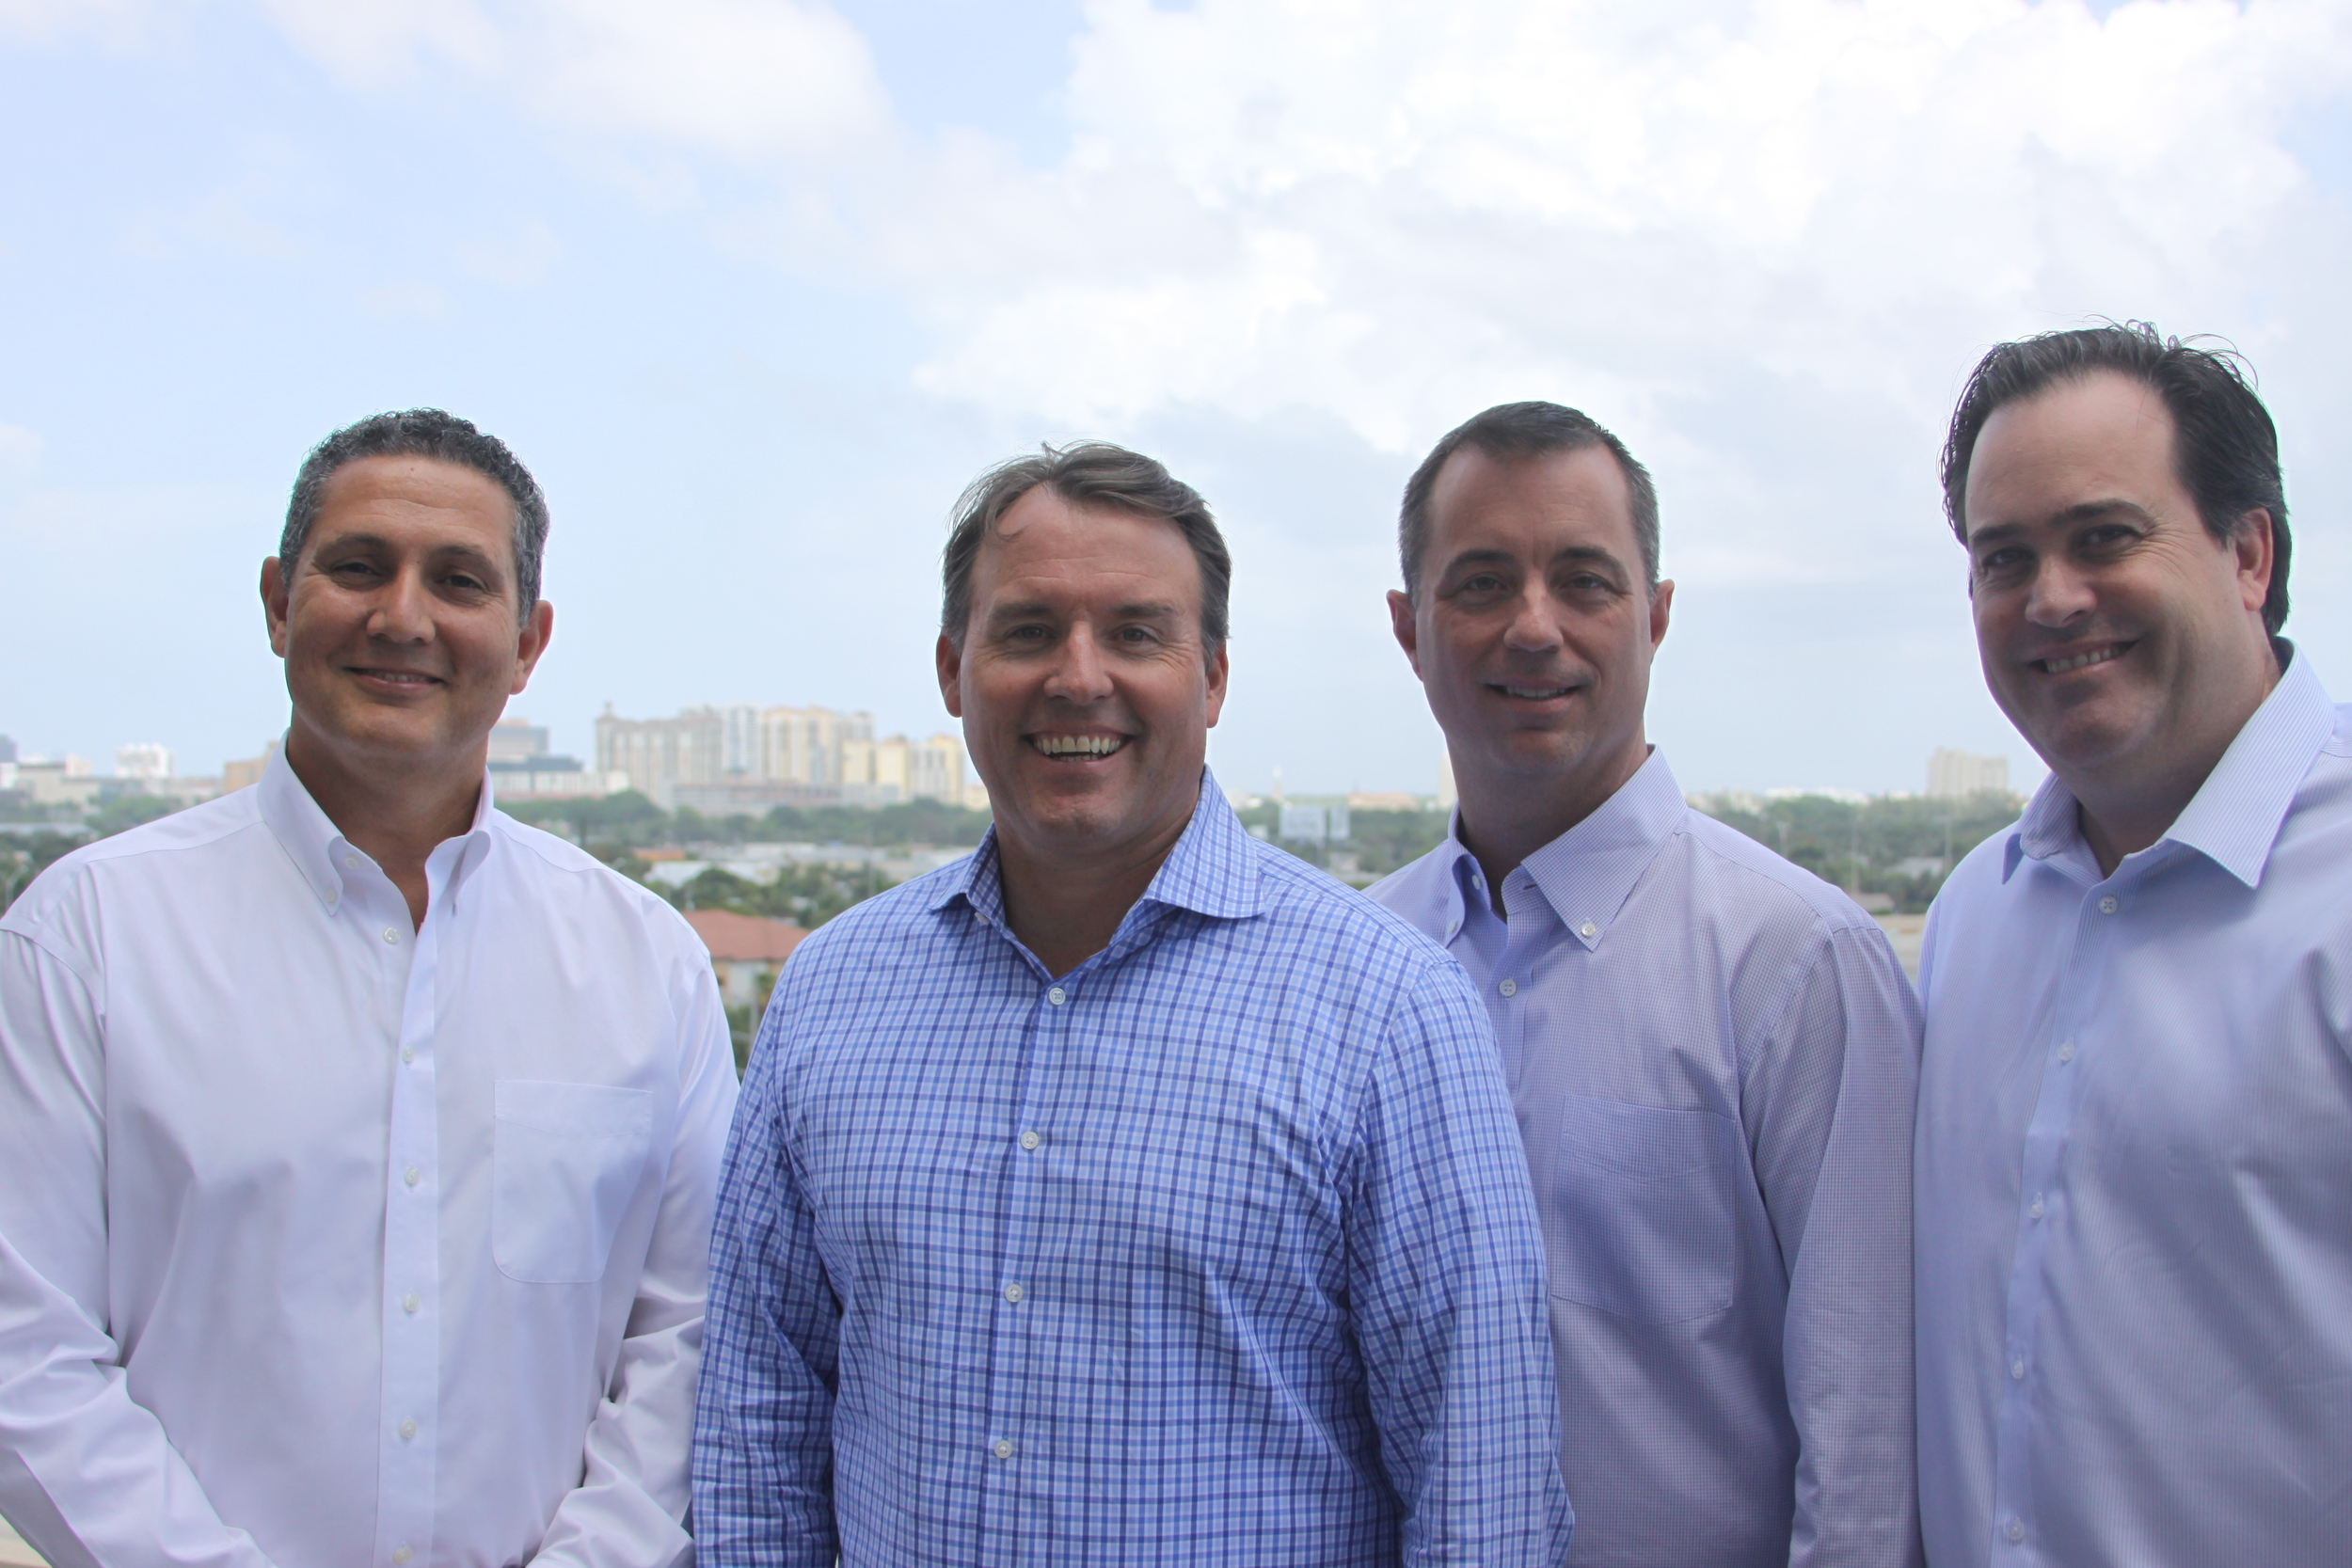 Finova Financial executives (left to right): Juan Ramirez, CEO Gregory Keough, Derek Acree, and Alfredo Rosing.      PHOTO: FIN    OVA